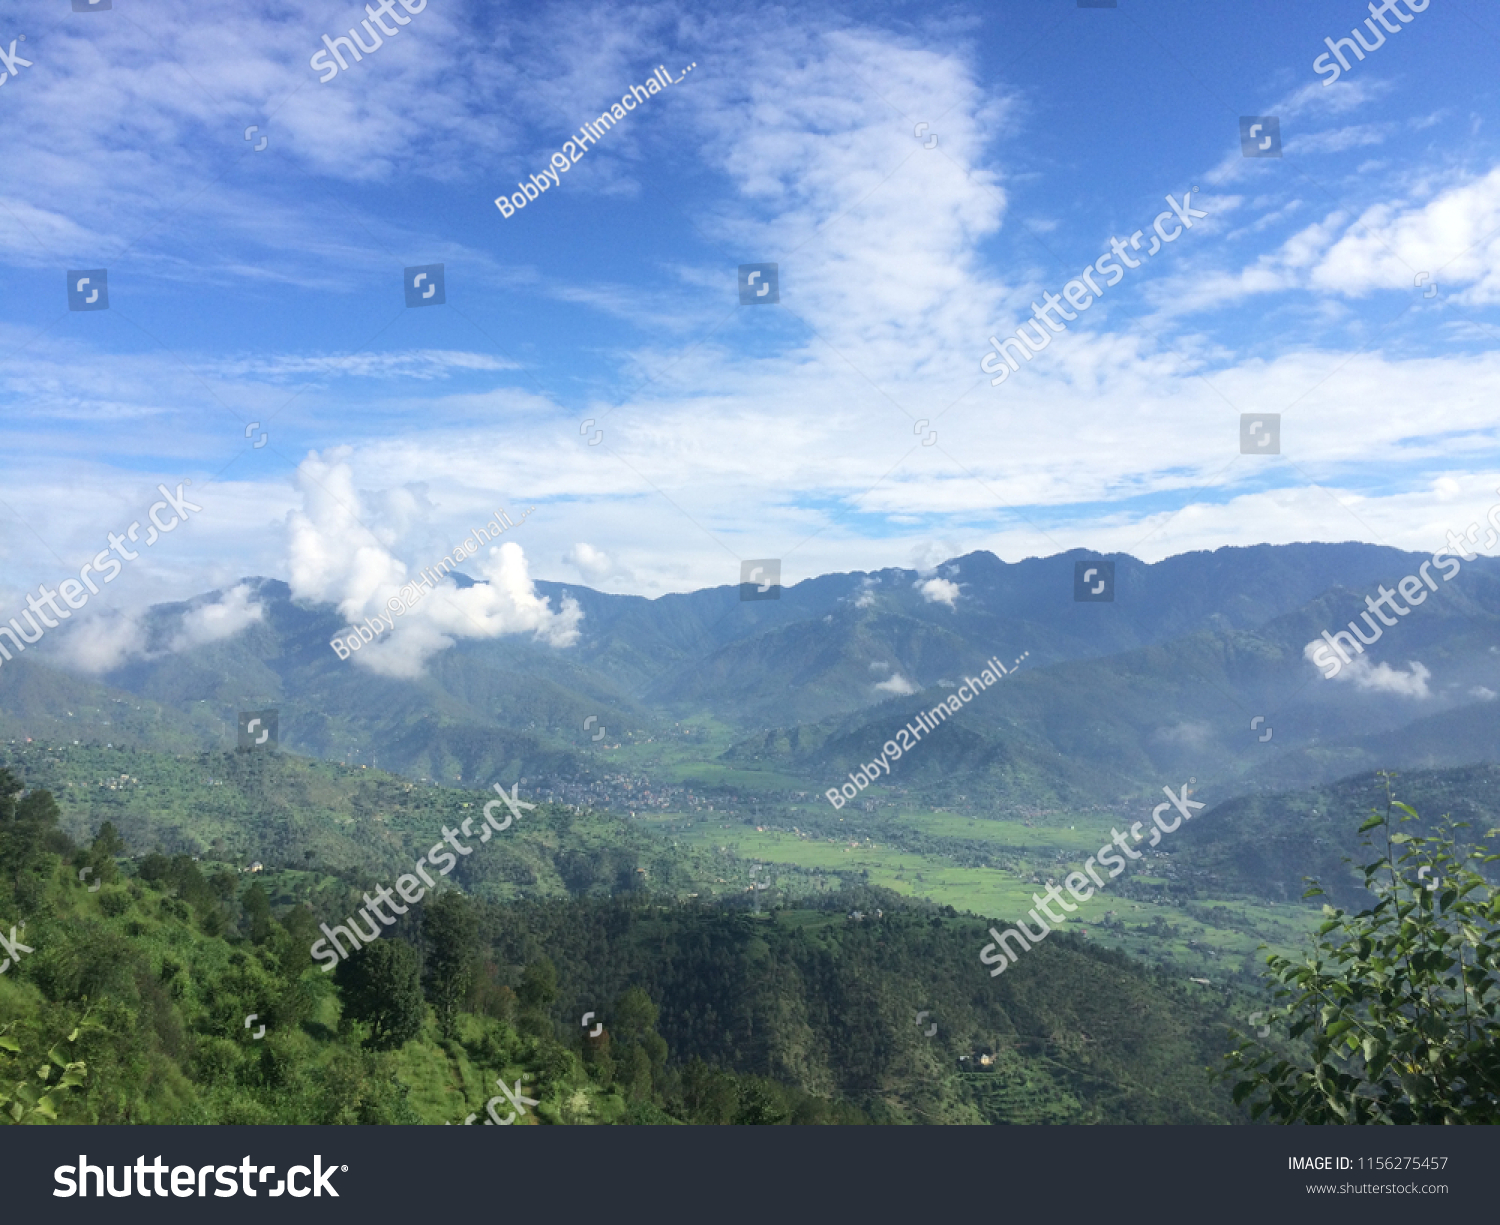 stock photo karsog valley beautiful view beautiful mountains clouds and blue sky desktop and mobile wallpaper 1156275457